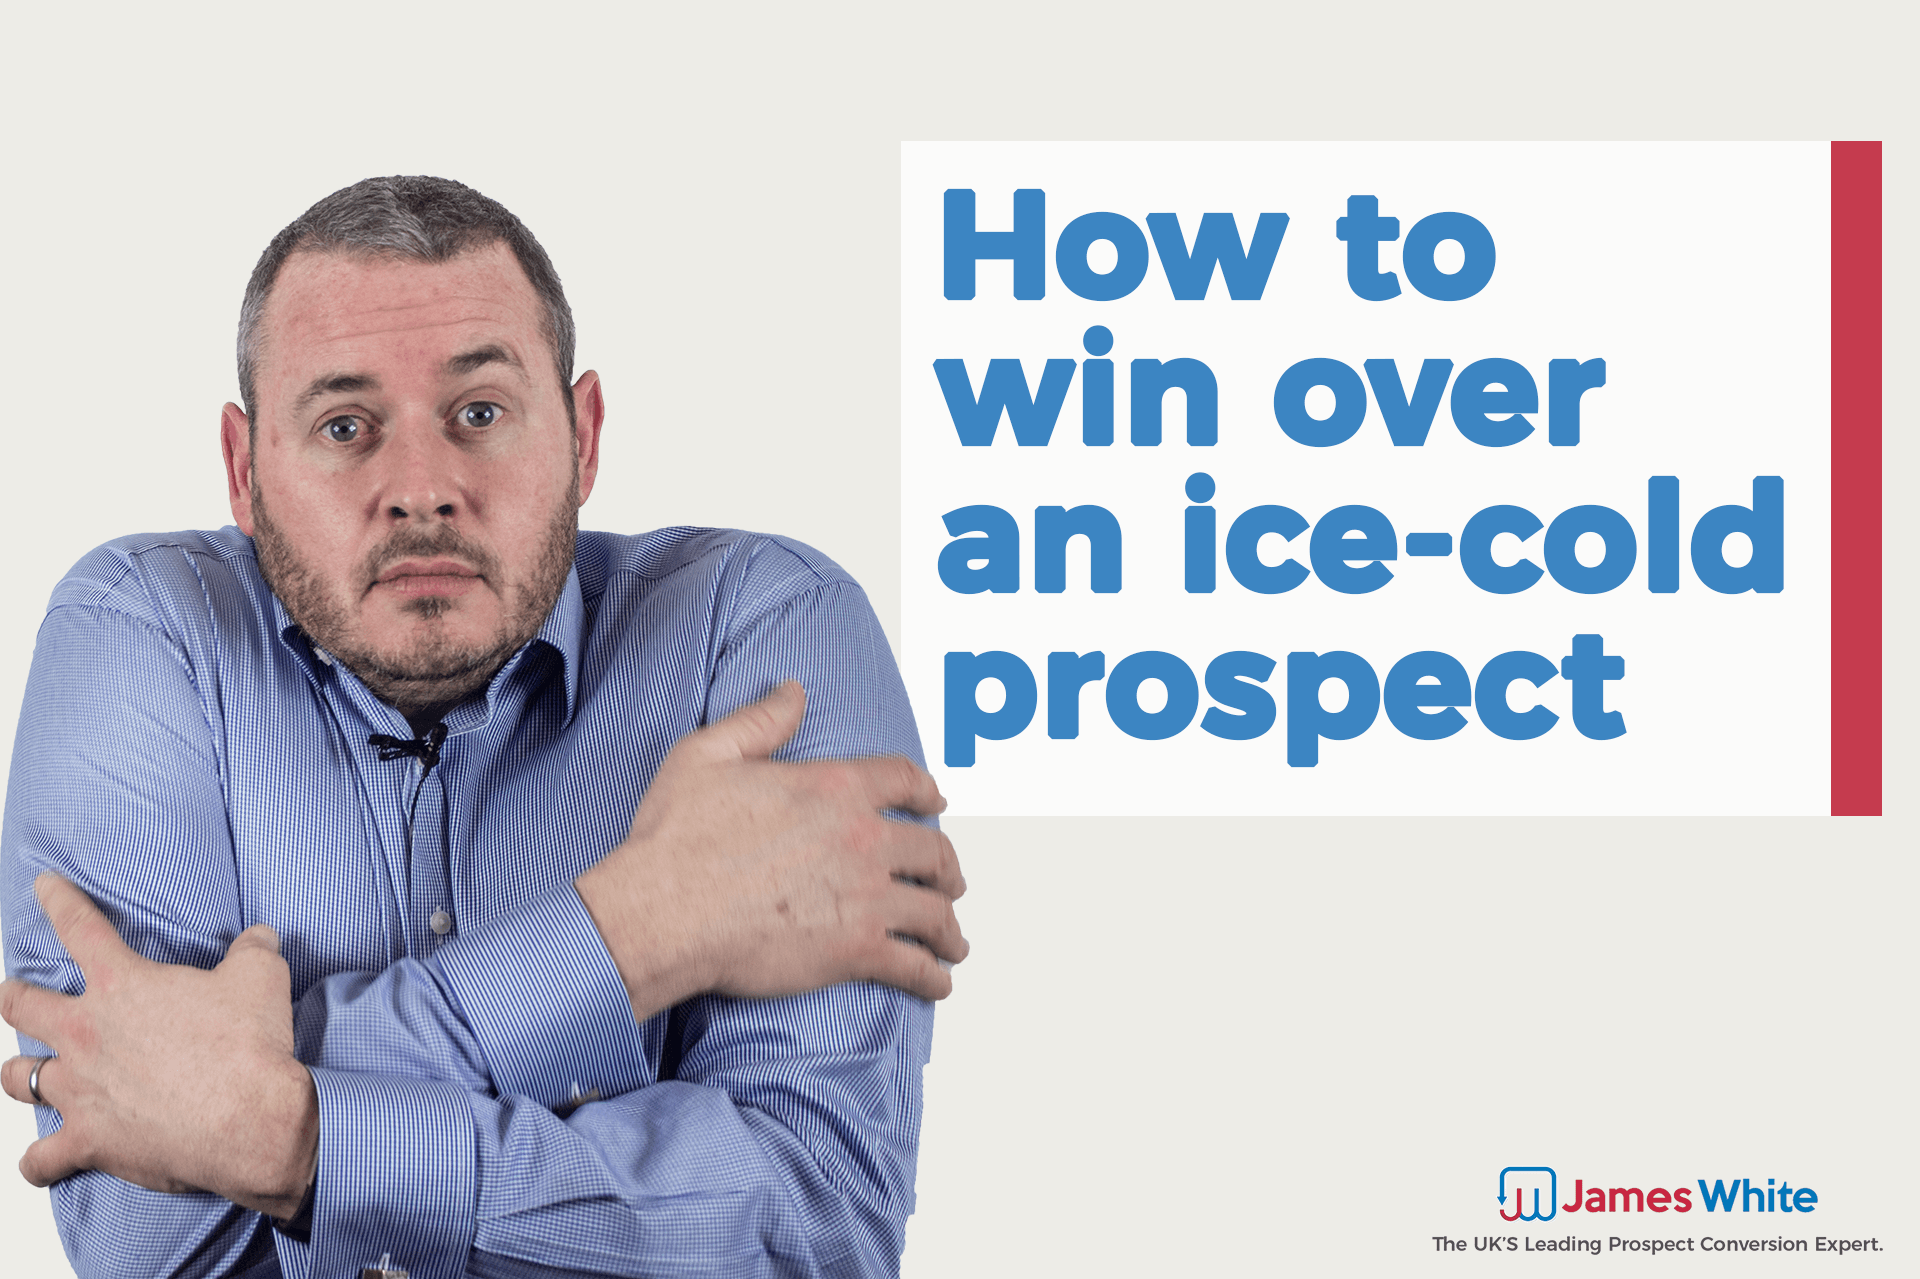 How To Win Over an Ice Cold Prospect